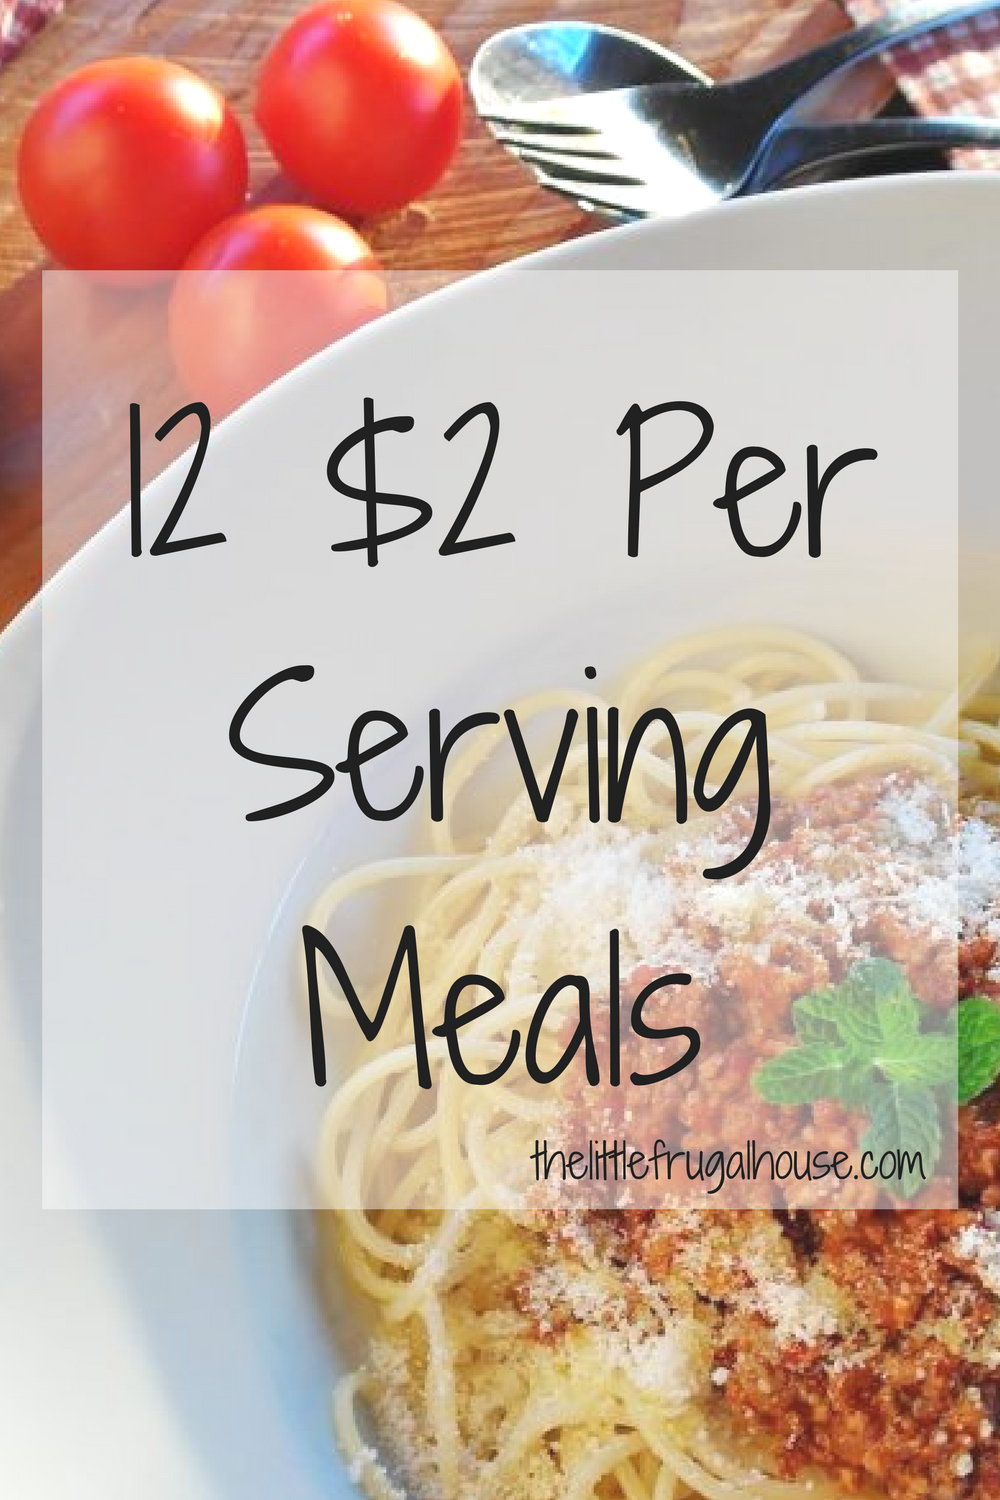 12 $2 Per Serving Meals - The Little Frugal House